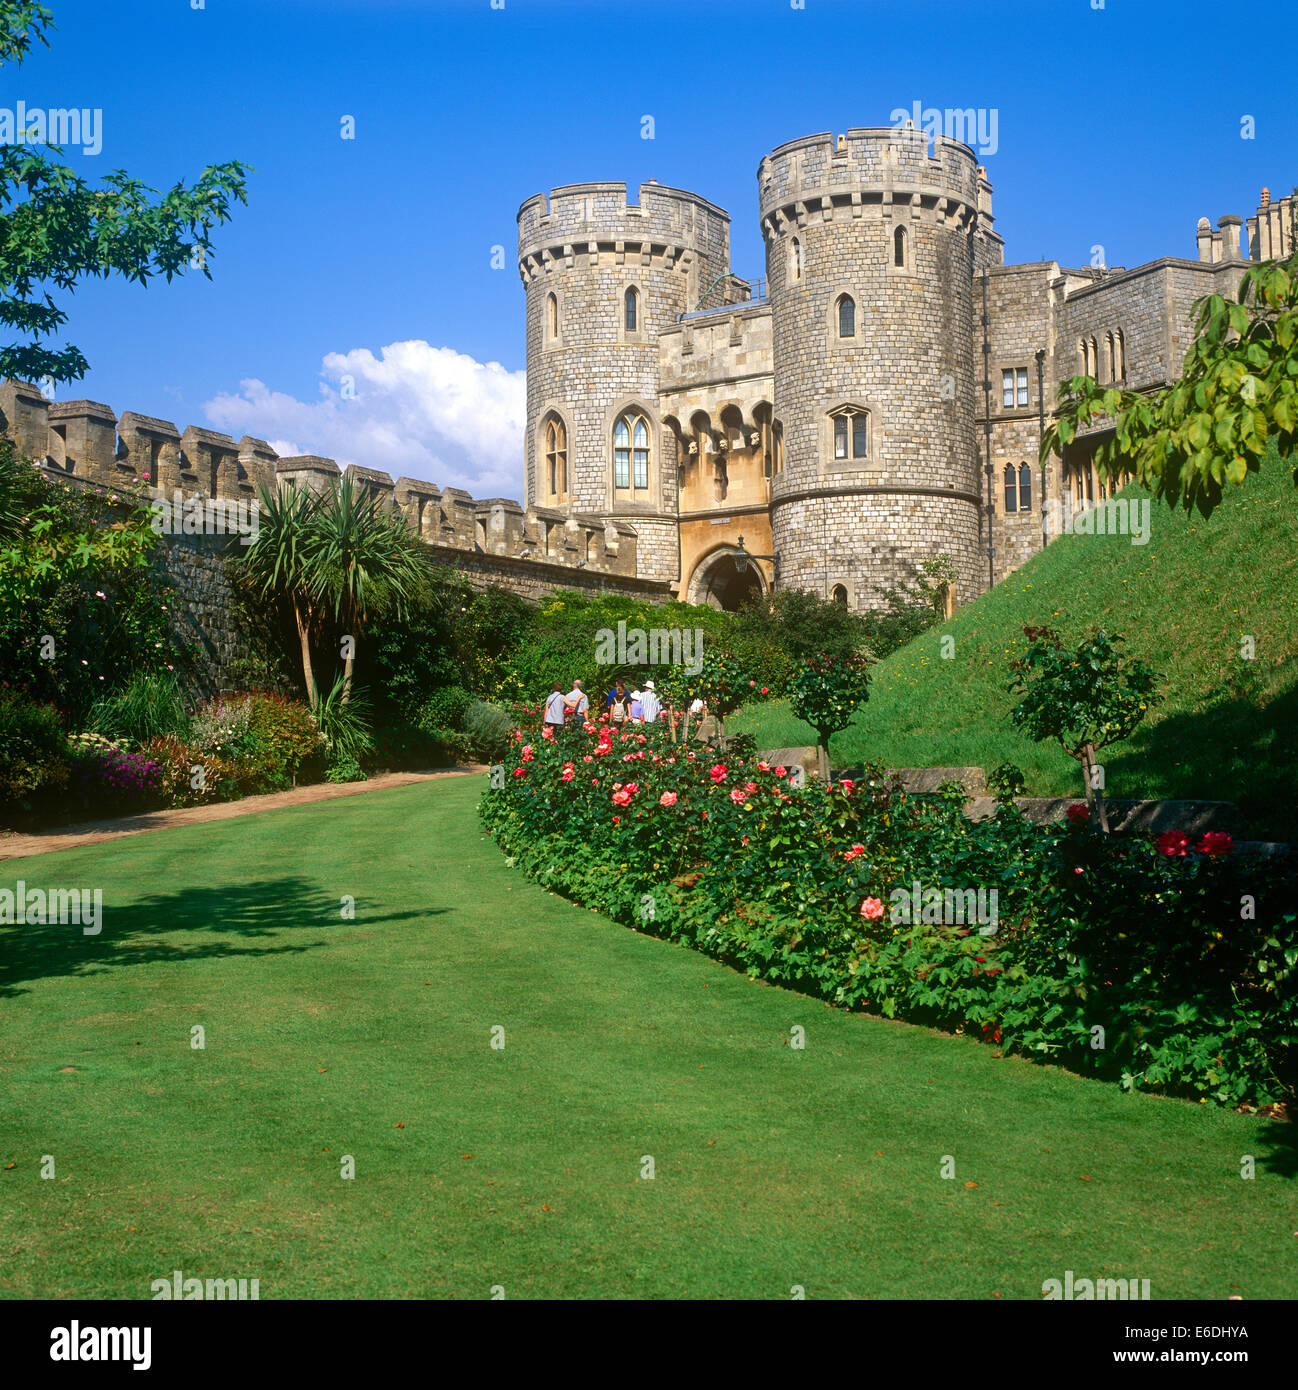 Windsor castle garden stock photos windsor castle garden for The berkshire